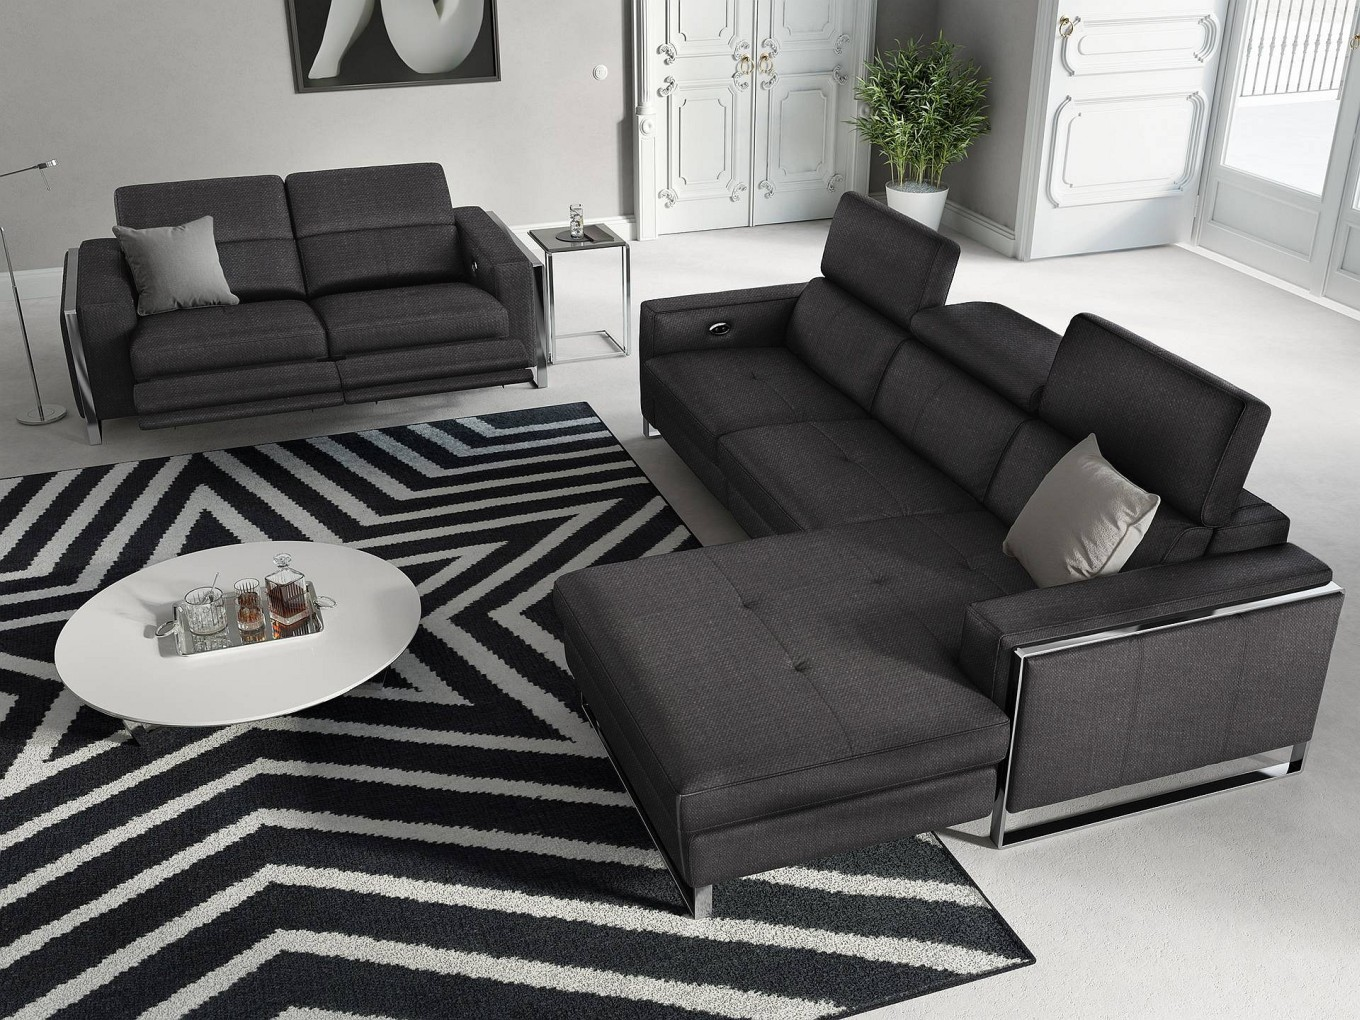 stoff sofa garnitur relax funktion couchgarnitur funktionssofa fernsehsofa leder ebay. Black Bedroom Furniture Sets. Home Design Ideas